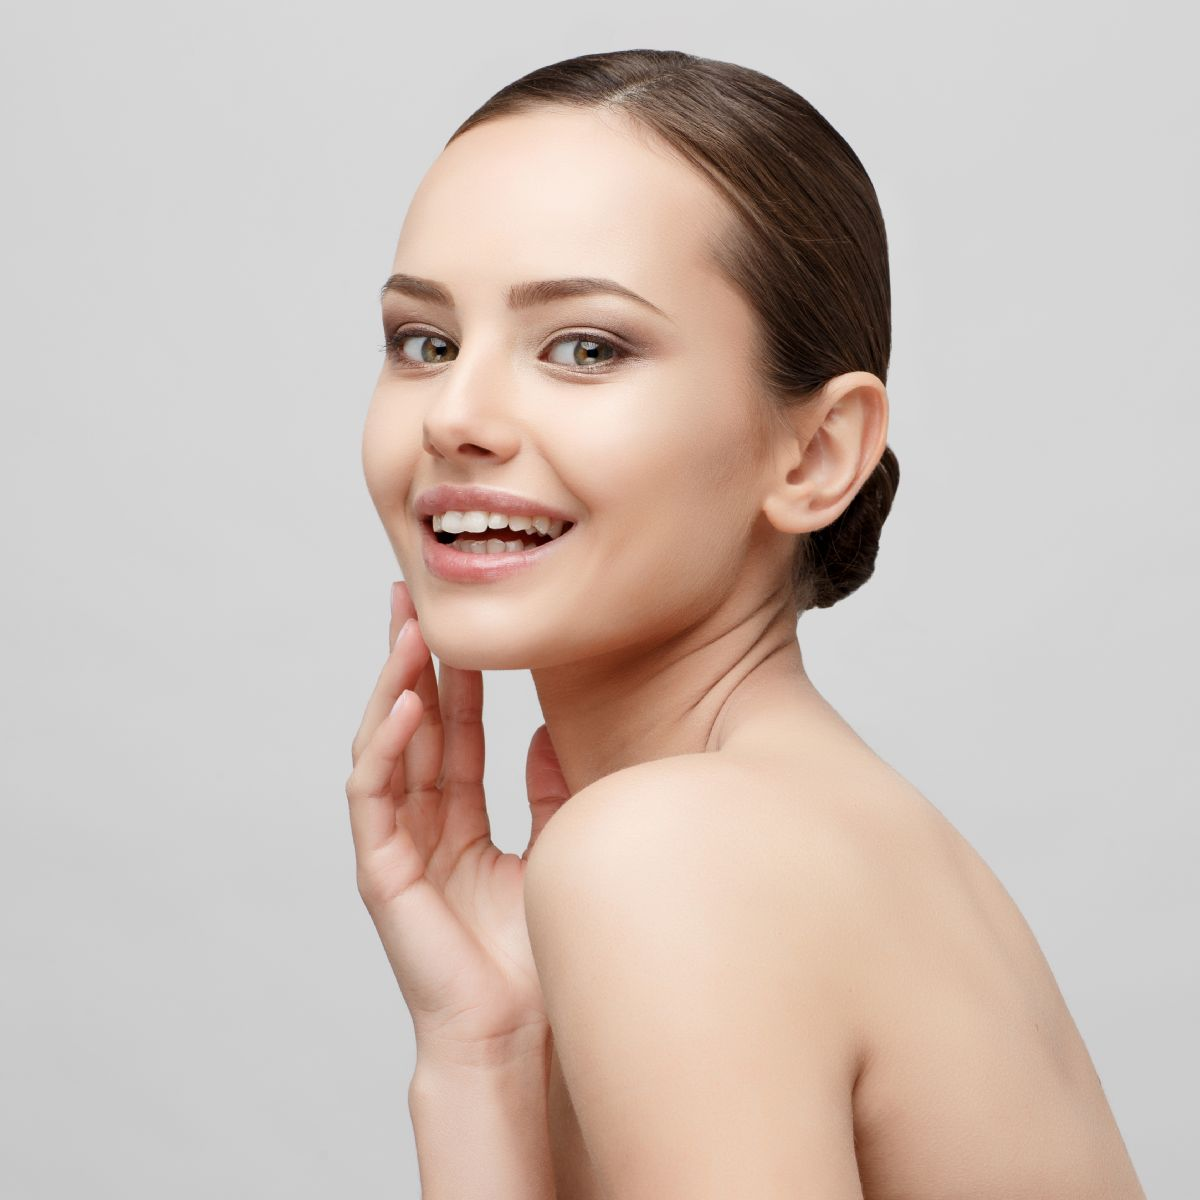 glycolic acid skin benefits